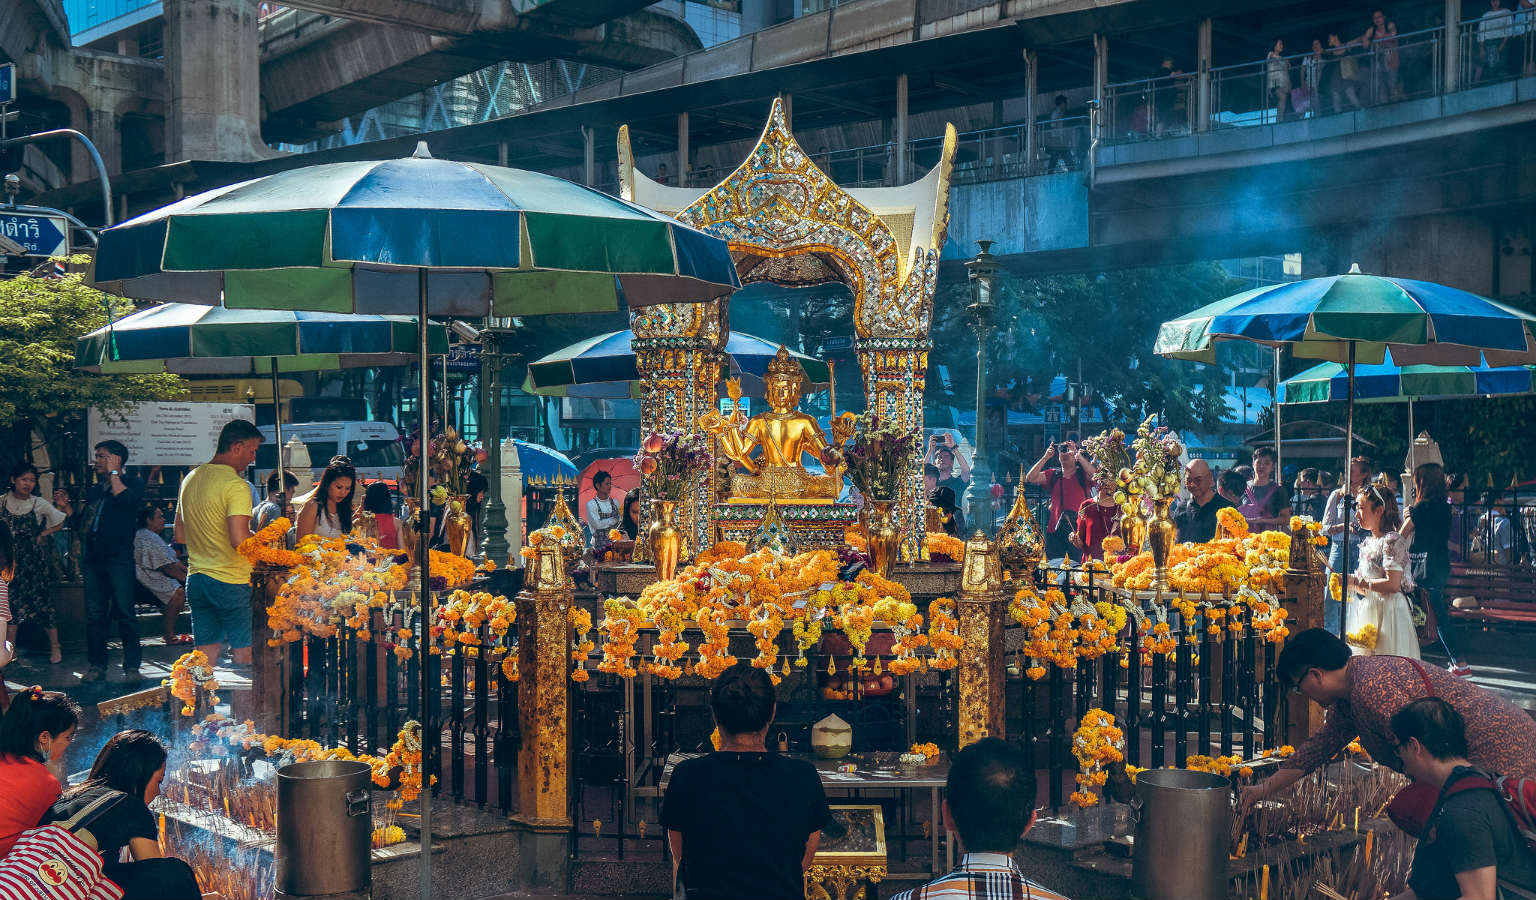 De Erawan Shrine in Bangkok, Thailand